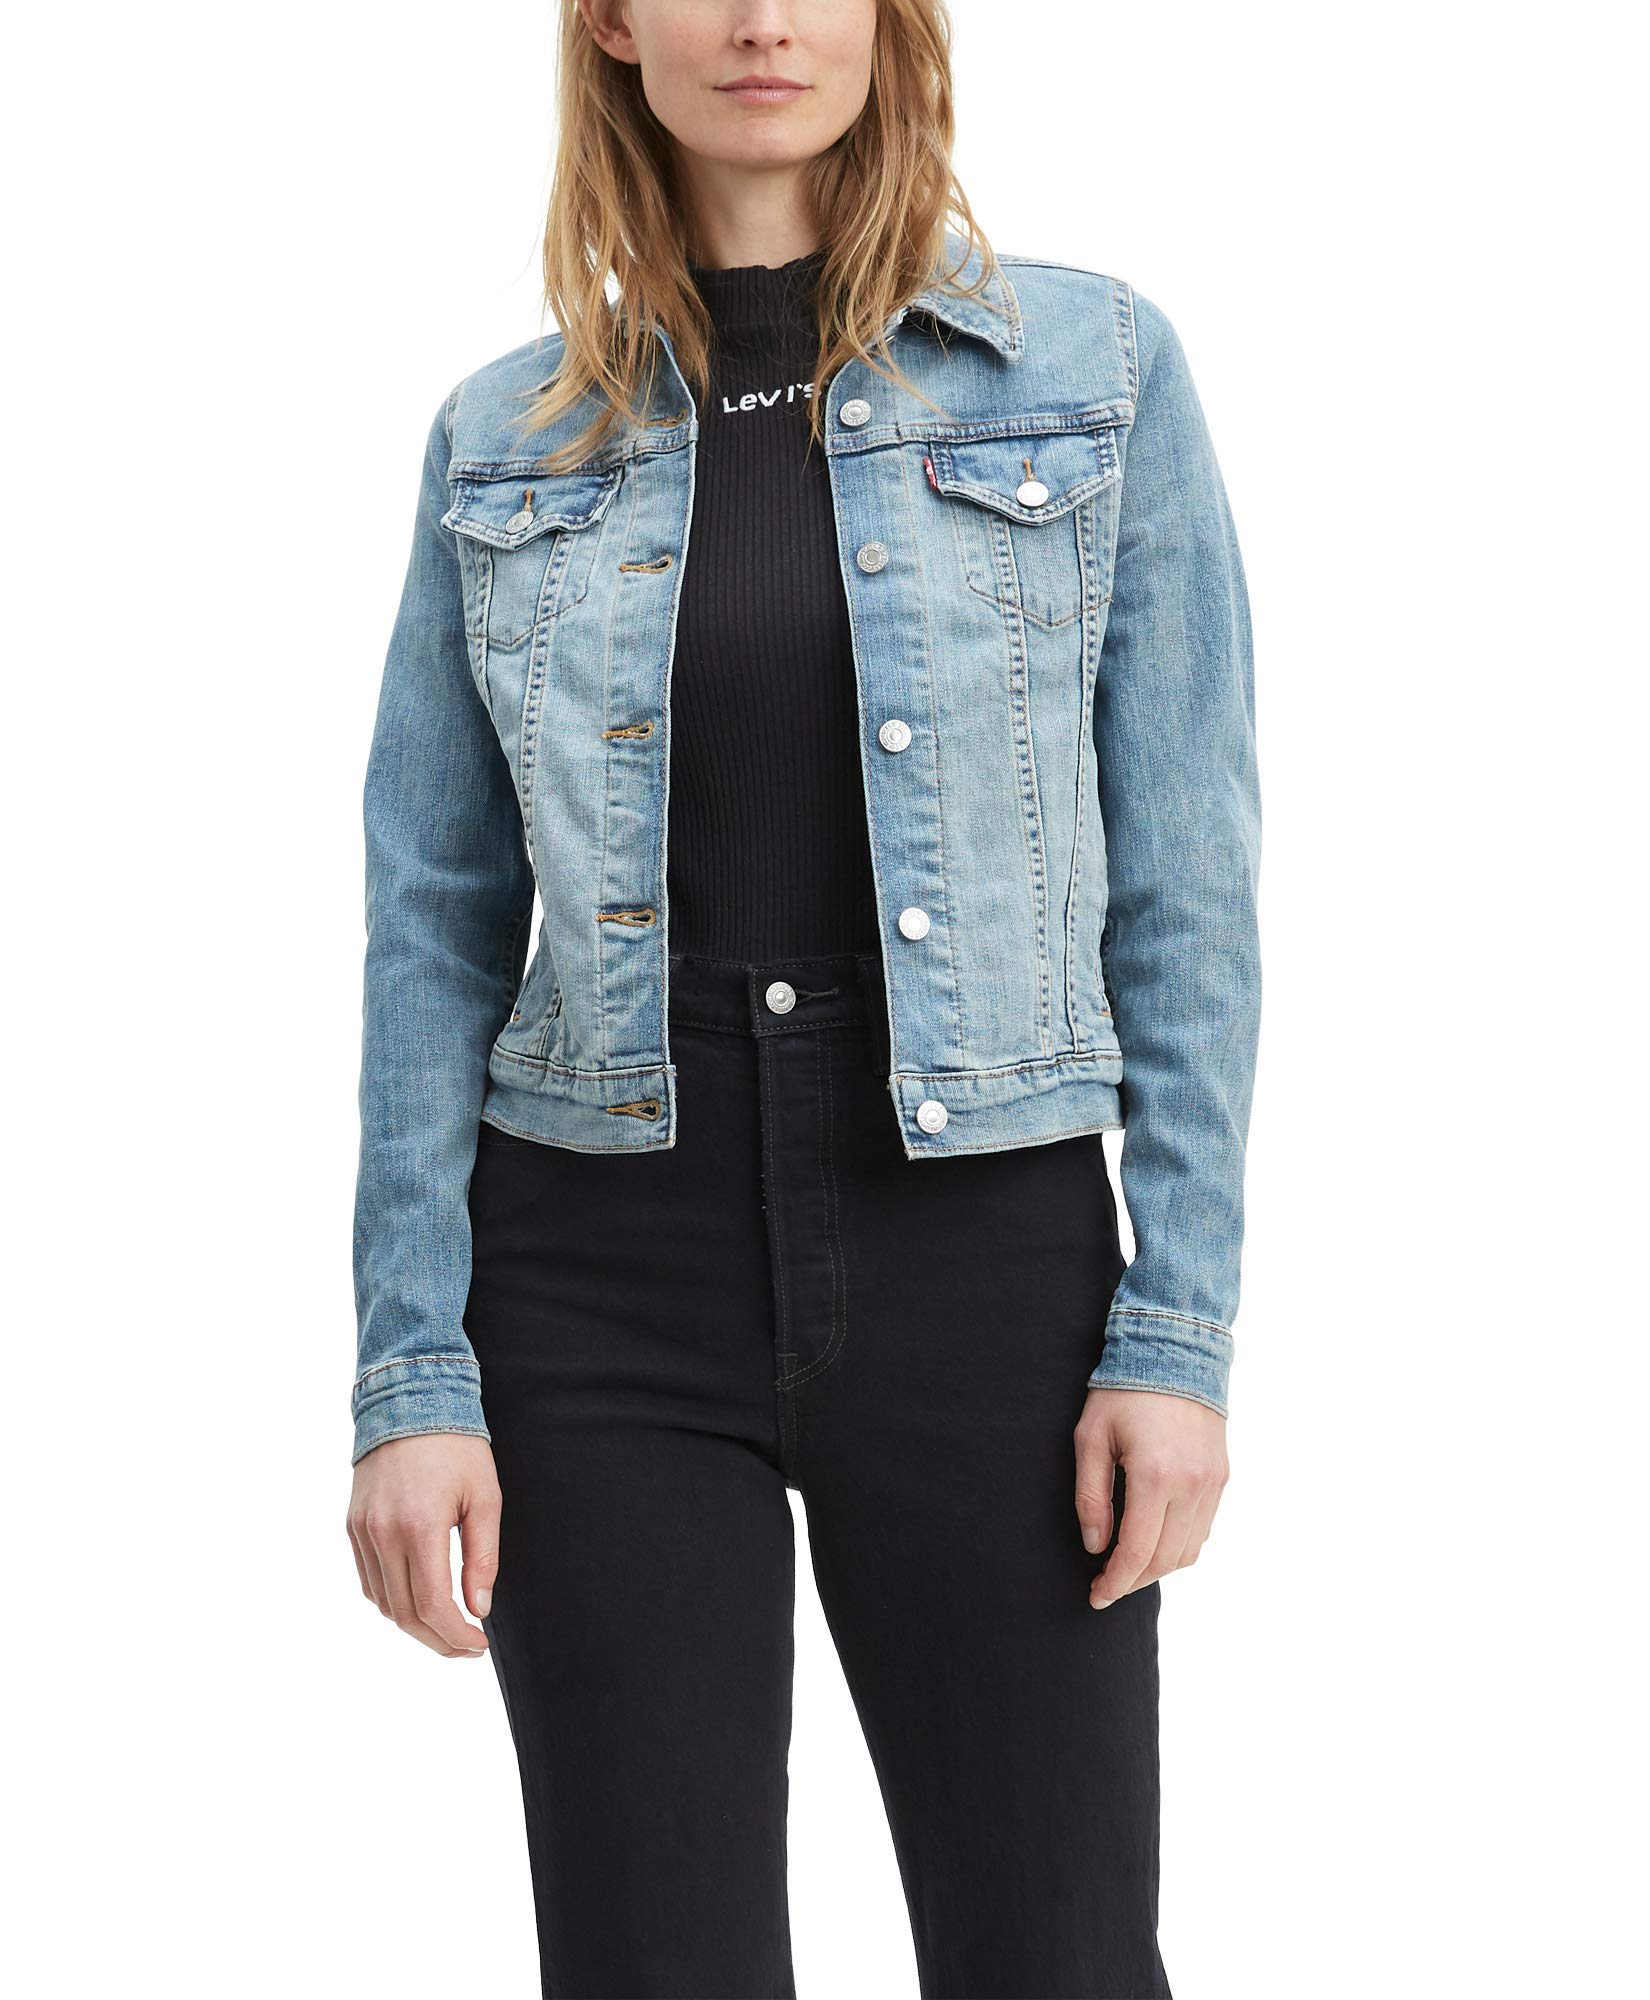 Levi's Women's Trucker Jackets Original, Jeanie, Small by Levi's